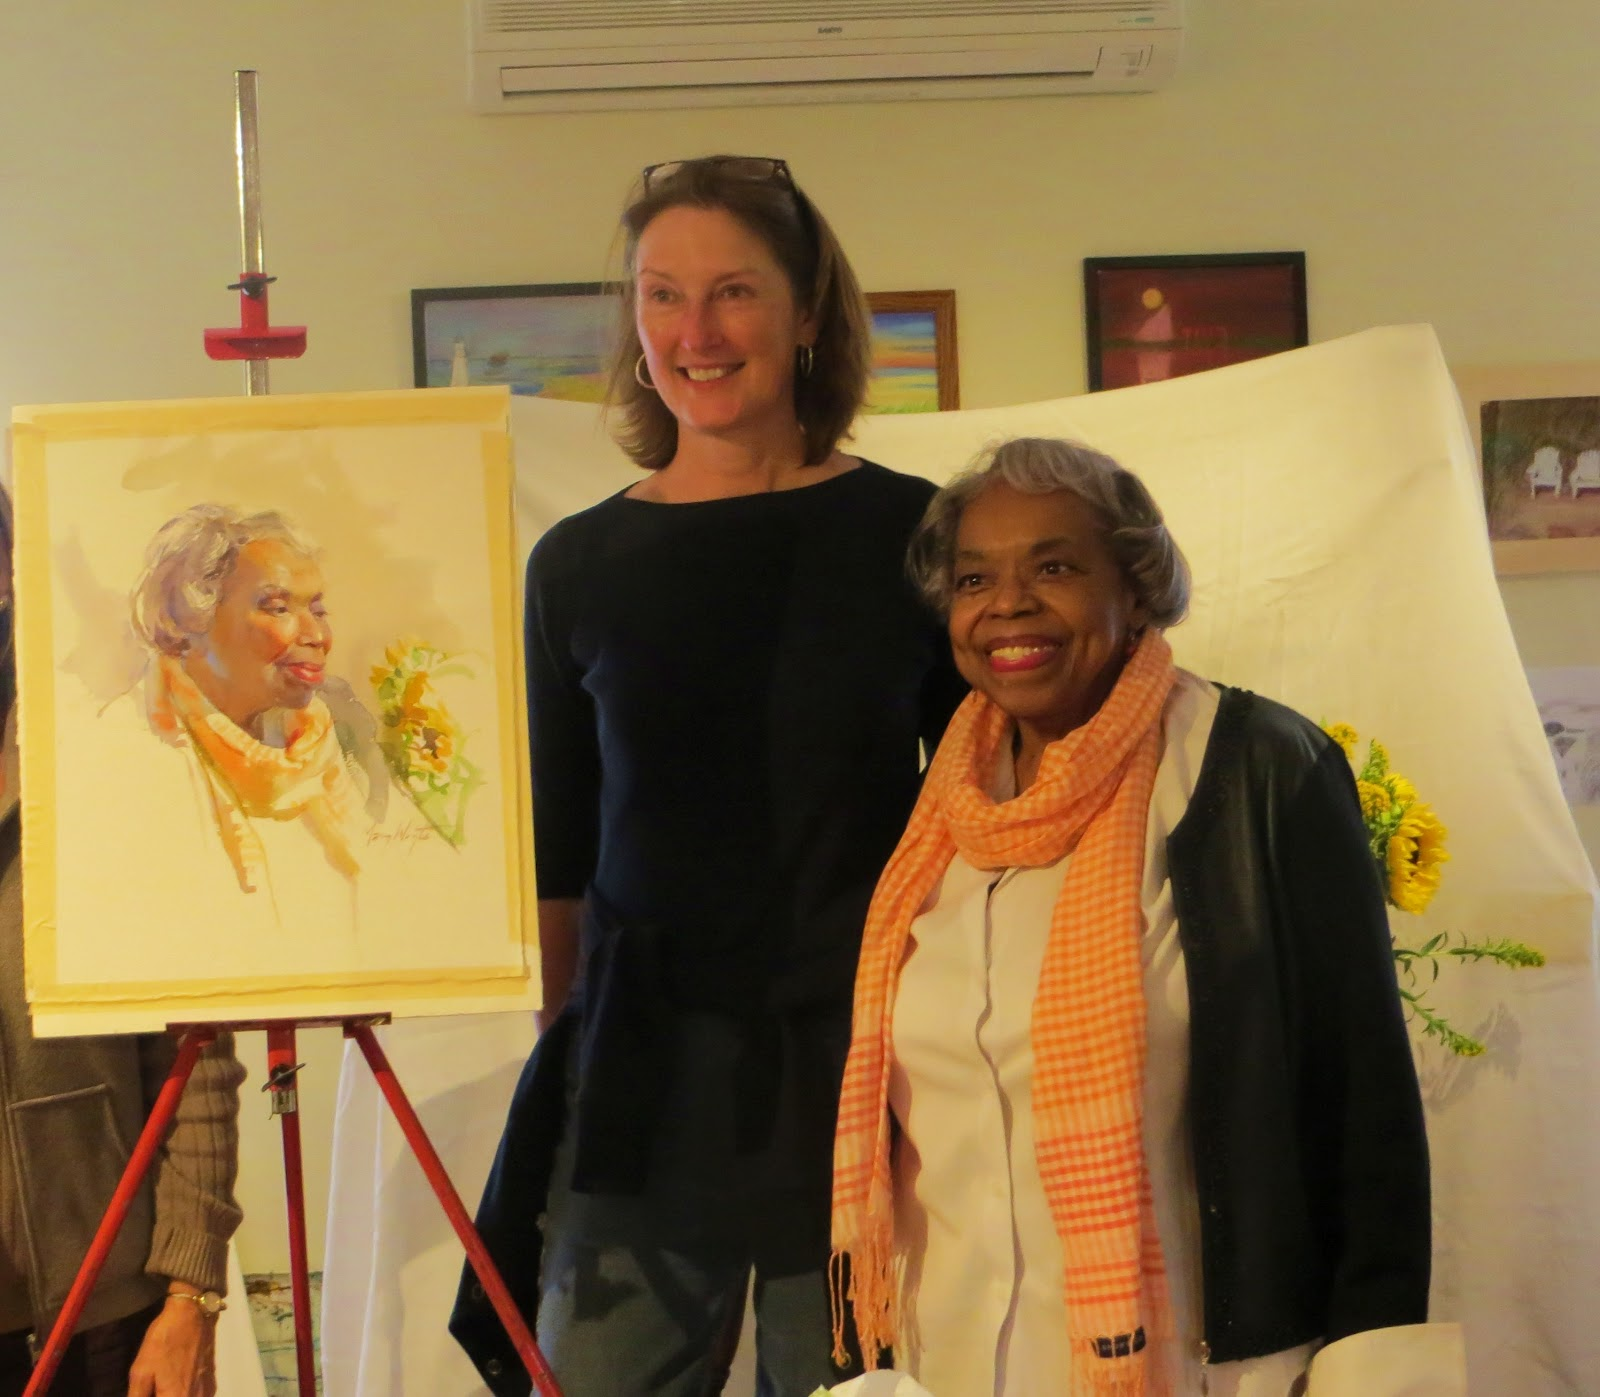 Watercolor books by mary whyte - Mary White Workshop Cape Cod Creative Arts Center